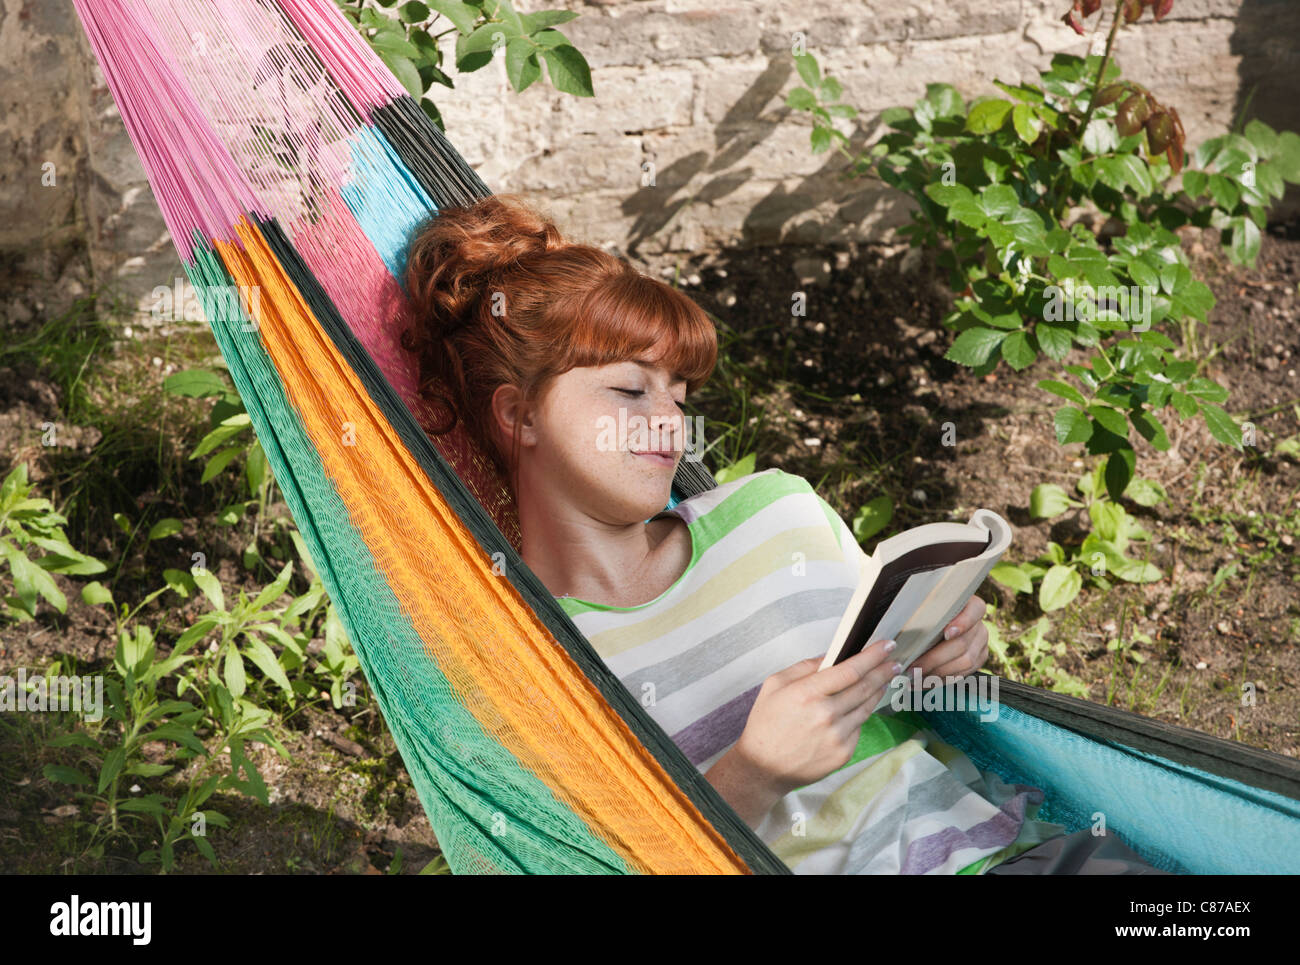 Germany, Berlin, Young woman reading book in hammock, smiling - Stock Image